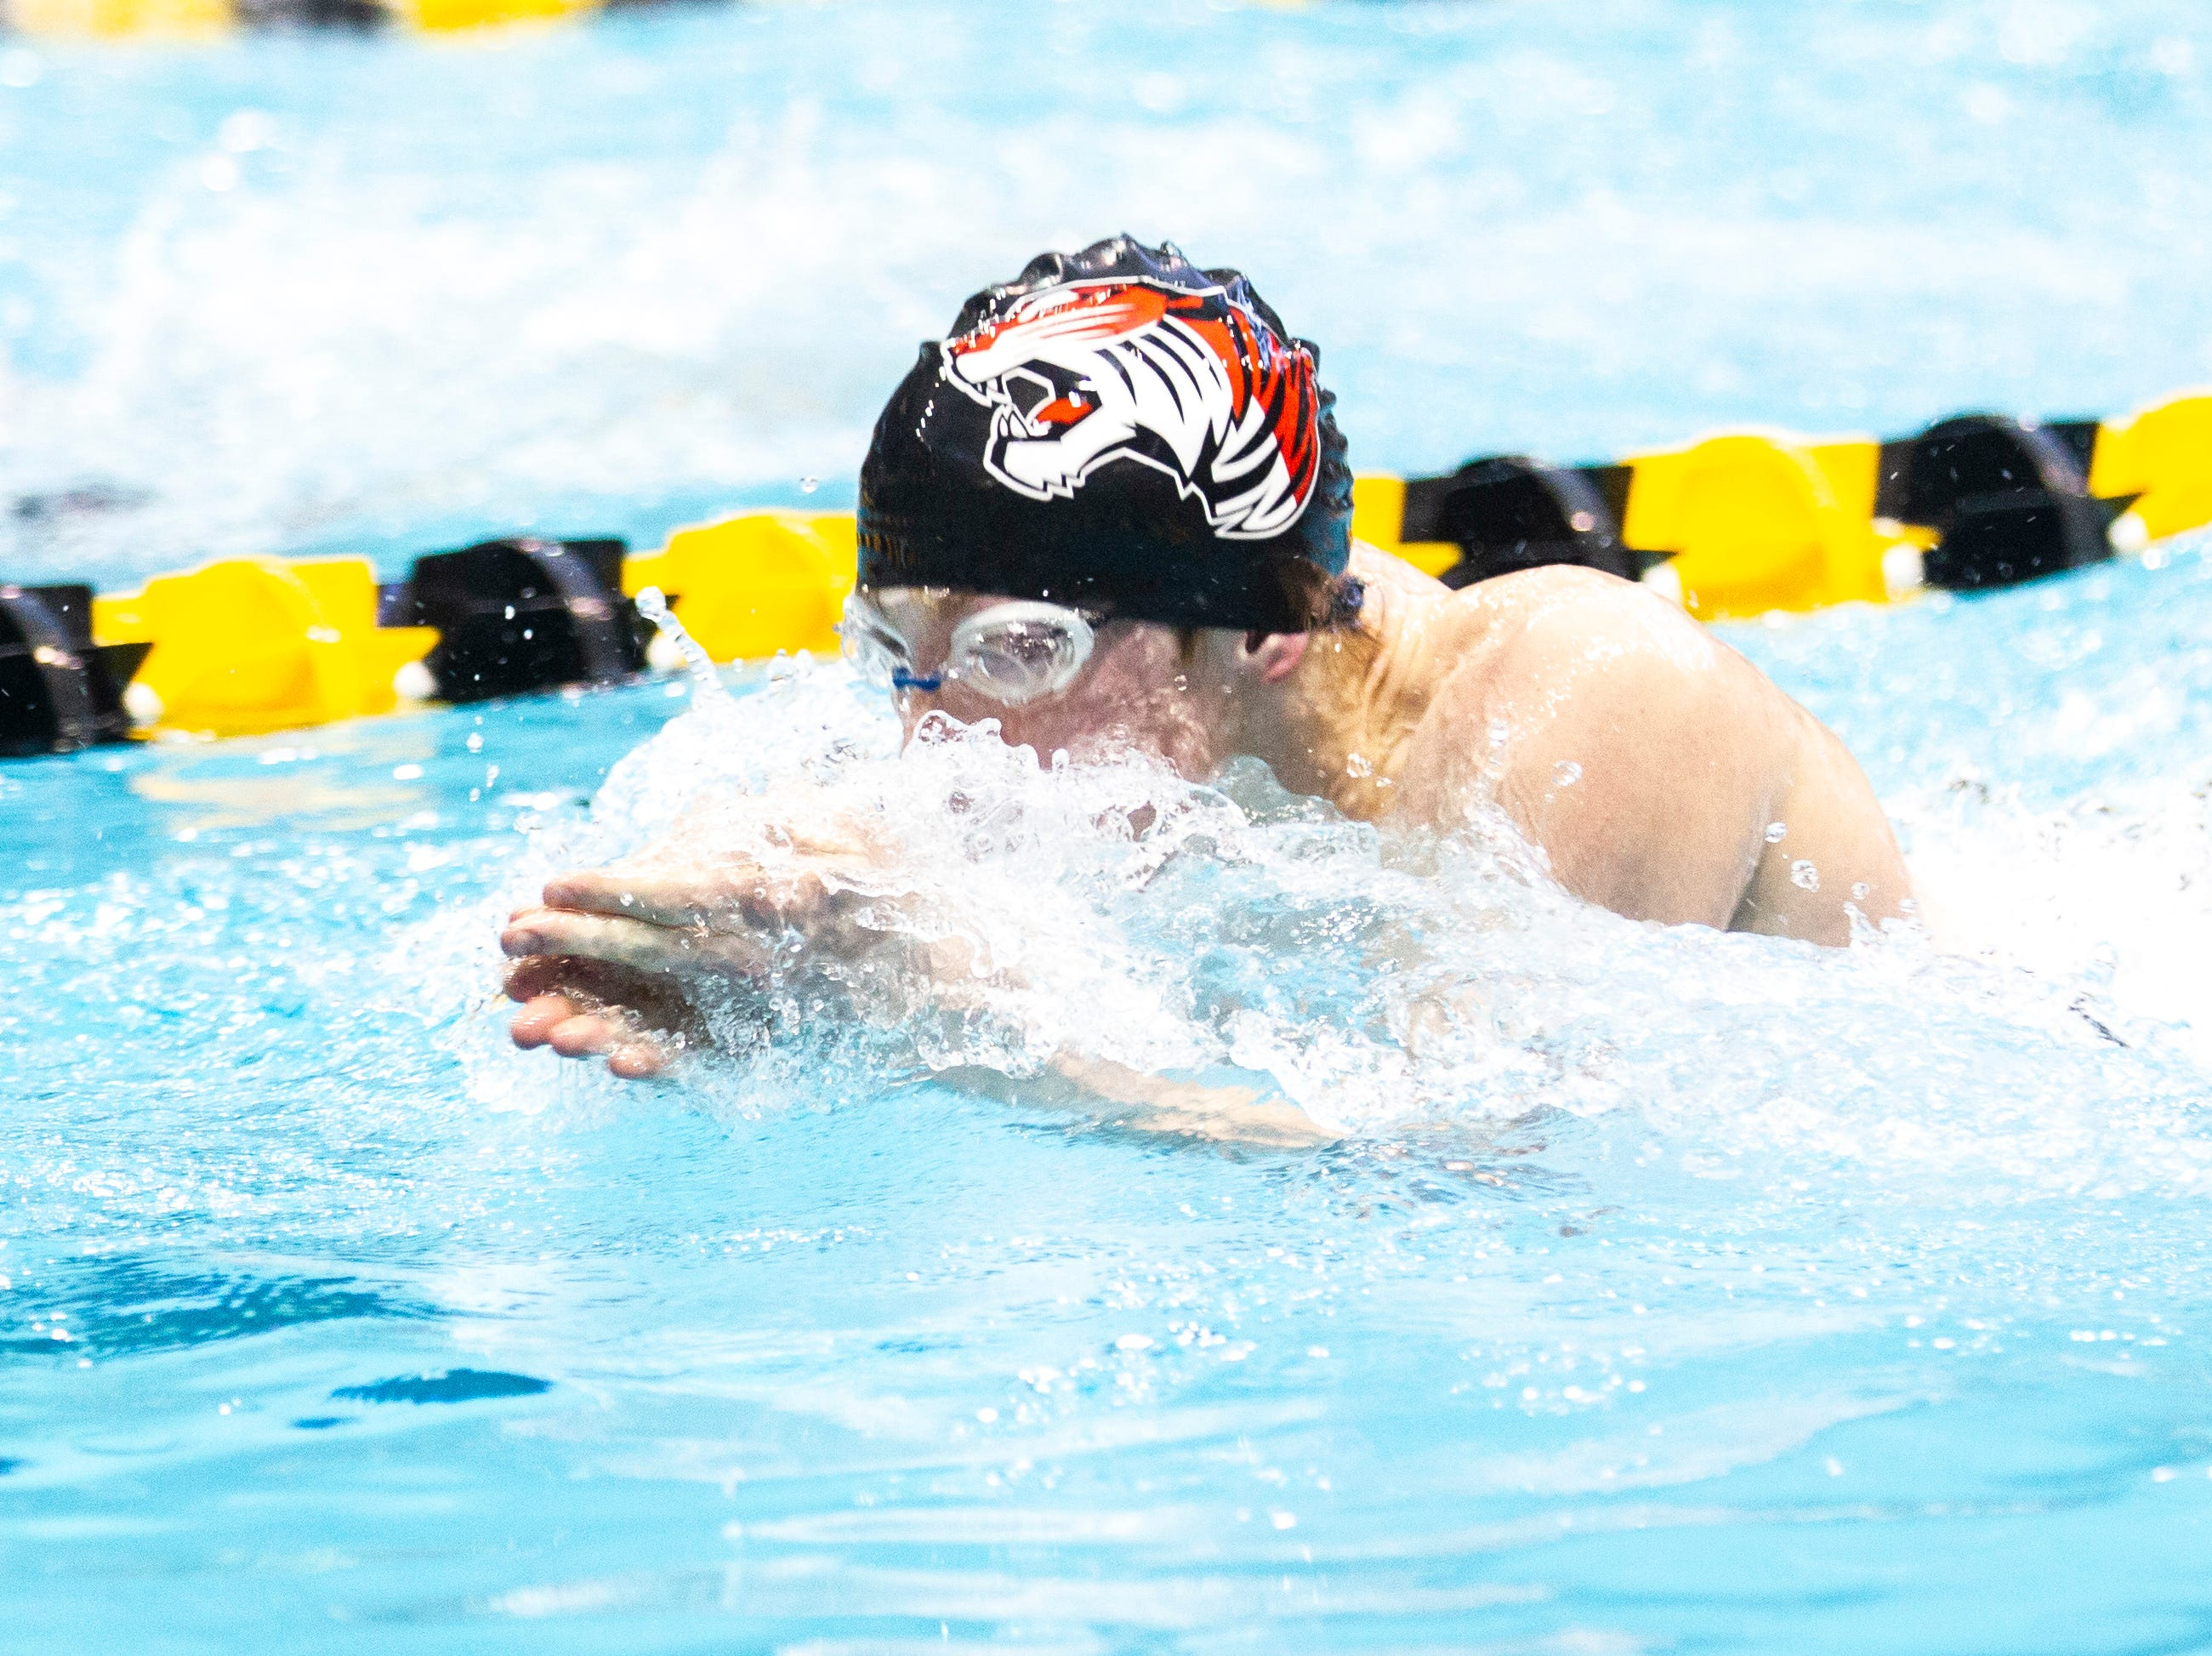 Cedar Falls sophomore Matt Durbin competes in the 200 yard medley relay during the Iowa boys' state swimming regional championship meet on Saturday, Feb. 9, 2019 at Campus Recreation and Wellness Center on the University of Iowa campus in Iowa City, Iowa. Cedar Falls finished fourth overall, with a time of 1:36.66.